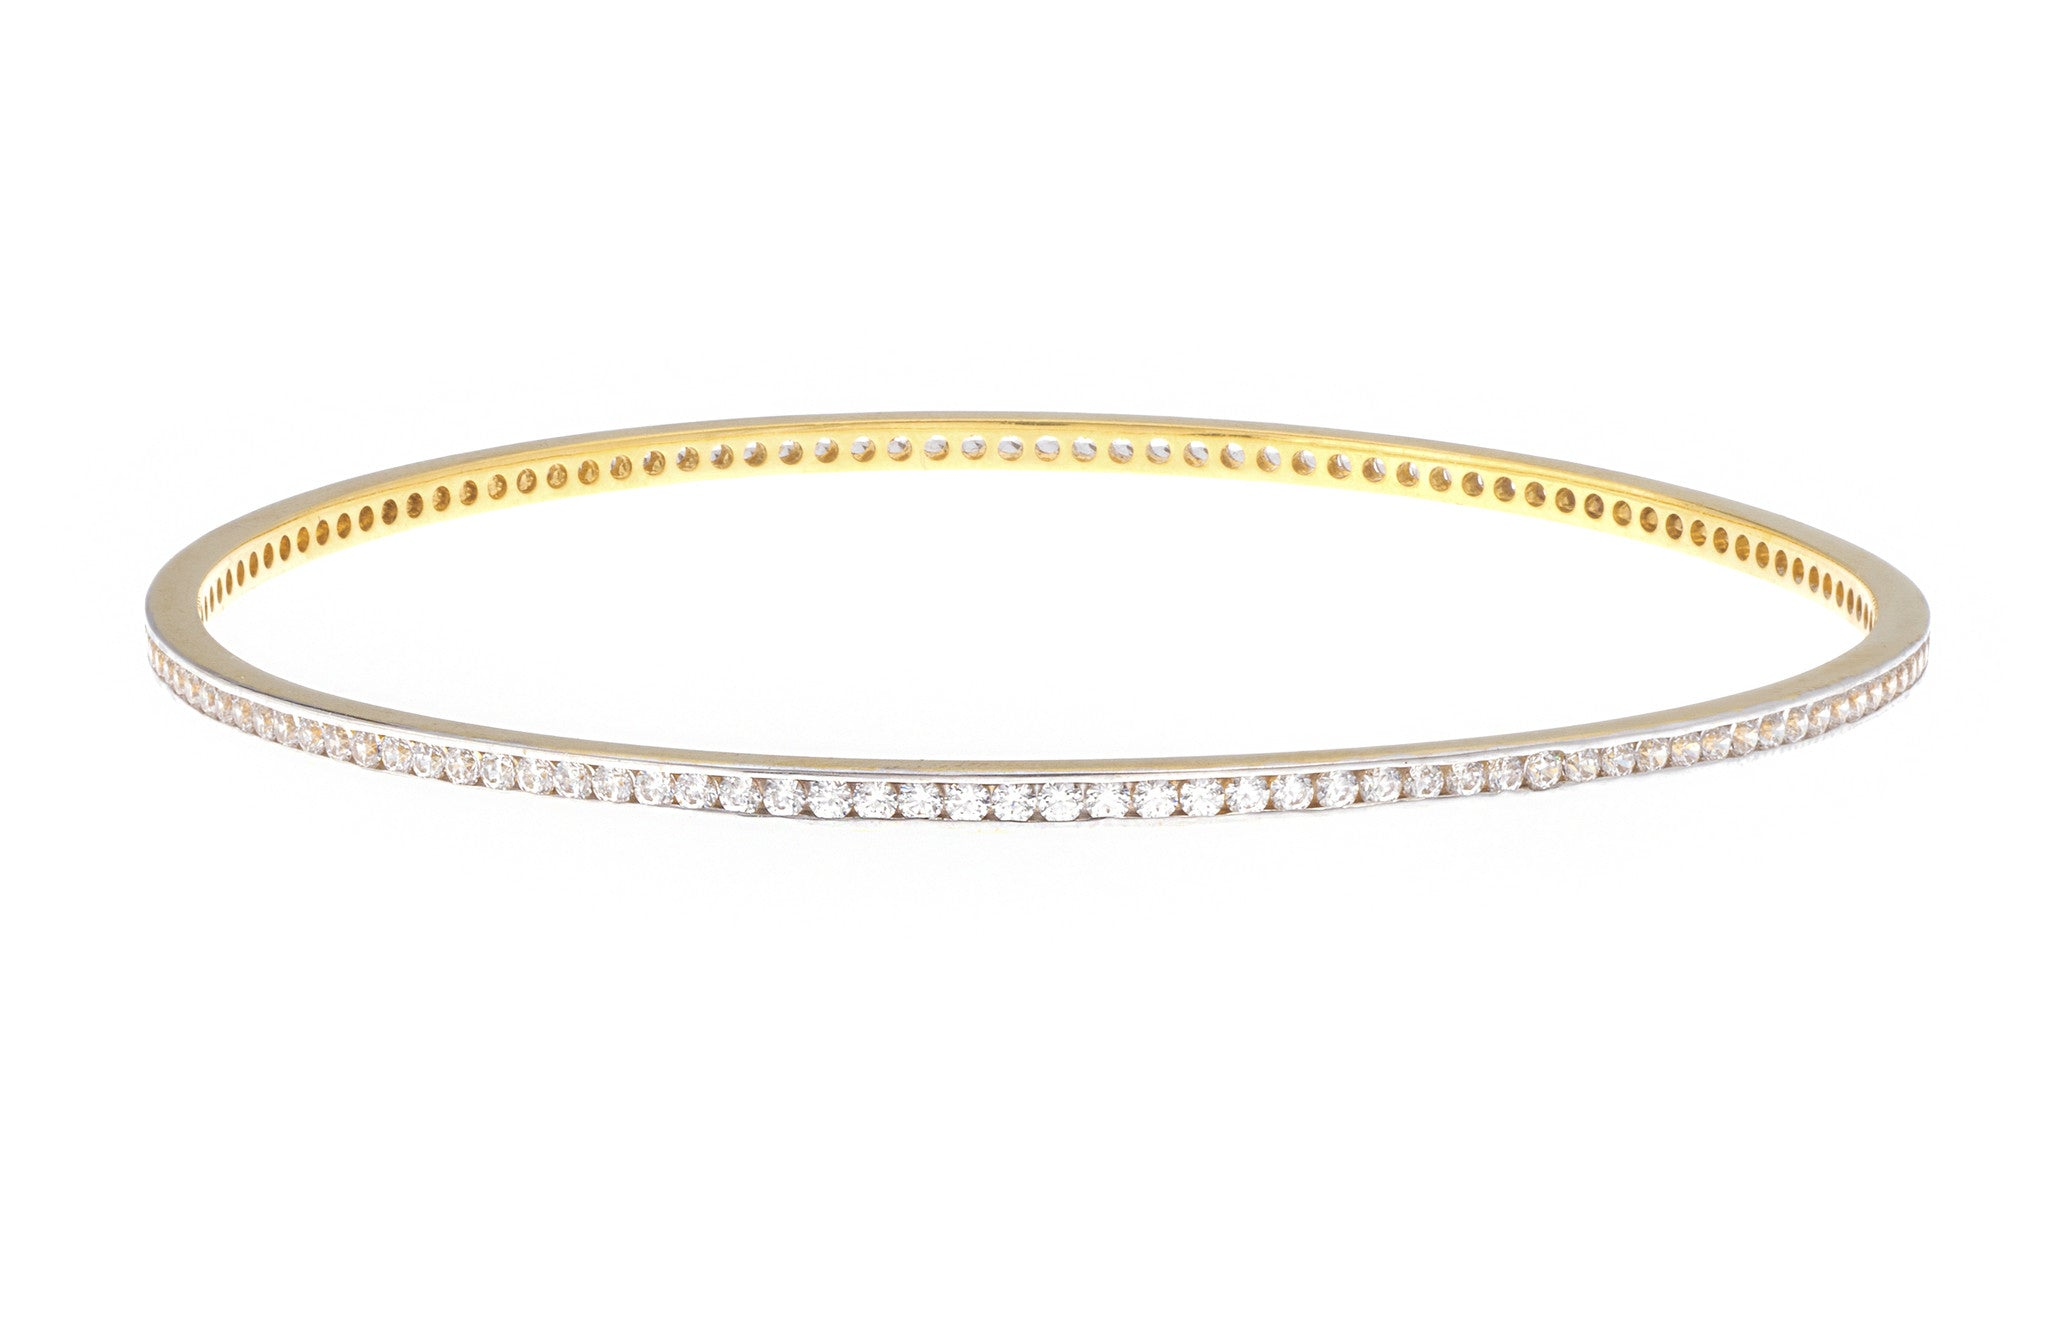 Stone Set 22ct Yellow Gold Bangle, Minar Jewellers - 1